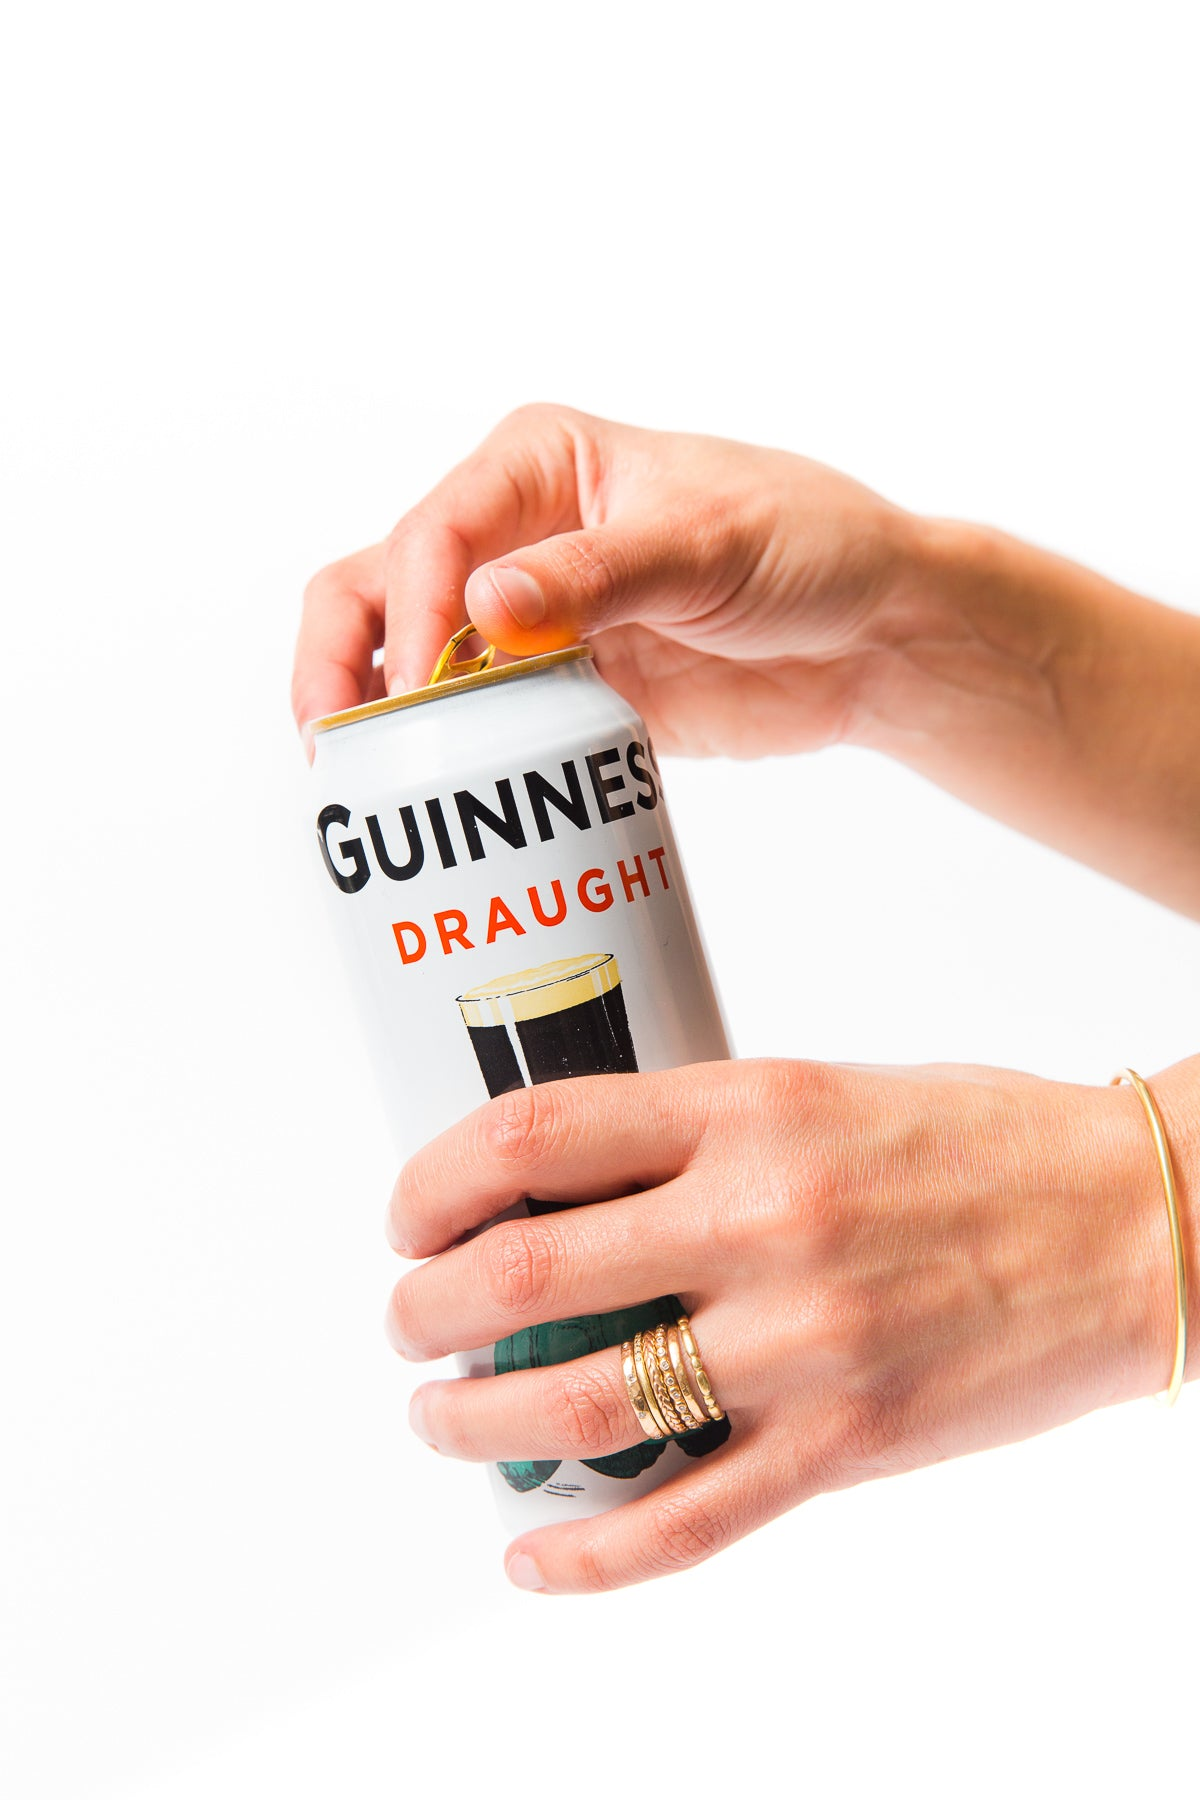 Image of hands opening a can of Guinness Draught for Miss Jones Baking Co Guinness Glazed Chocolate Donuts Recipe